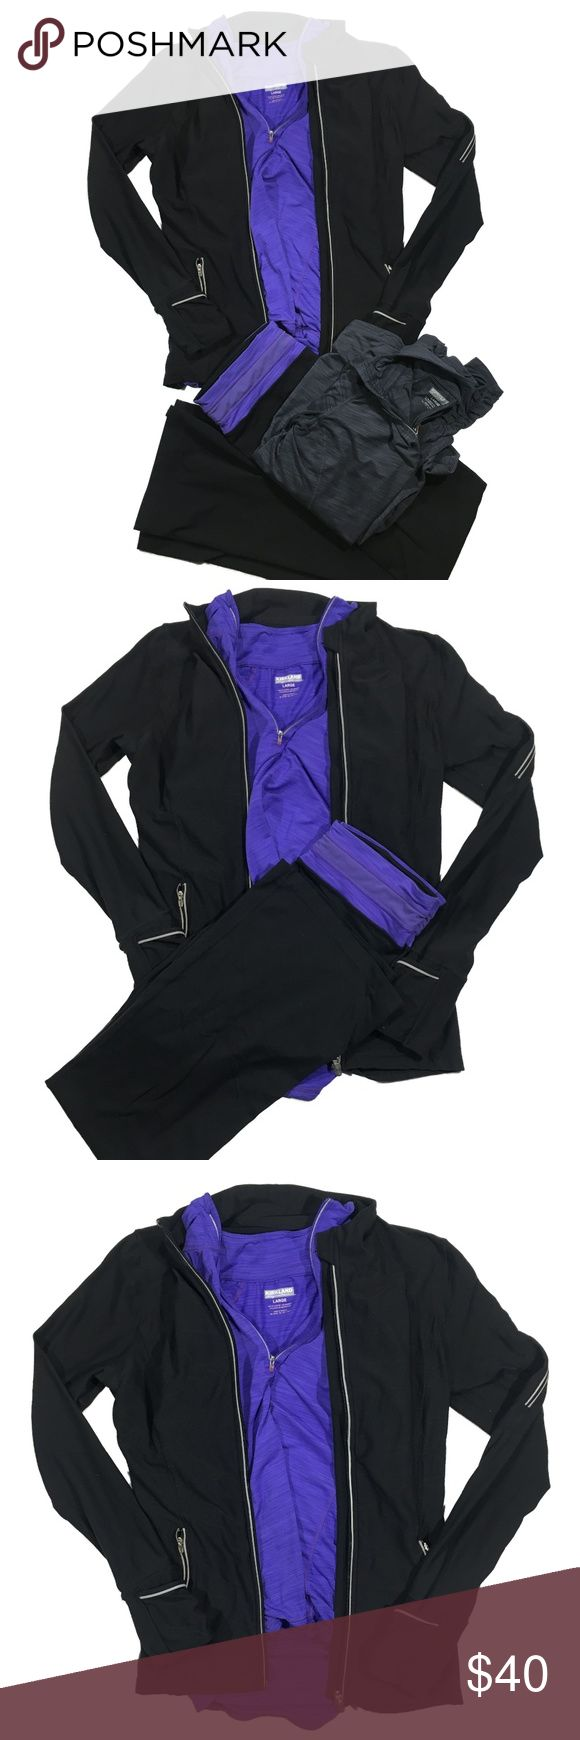 4 Piece Costco / Kirkland Workout Bundle - Brand: Kirkland / Costco  - Style: Athletic Wear  - Size: All size Large, except pants which are size Medium  - Color: Black / Purple / Gray / White (Reflective strips on jacket)  - Condition: Excellent; You'll probably mistake it for brand new! >>>> INCLUDES           1) Gray Quarter Zip           2) Purple Quarter Zip            3) Black Jacket           4) Black & Purple Yoga Pants   - Retail: $112  * Kirkland, Costco, Athletic Wear, Lululemon…